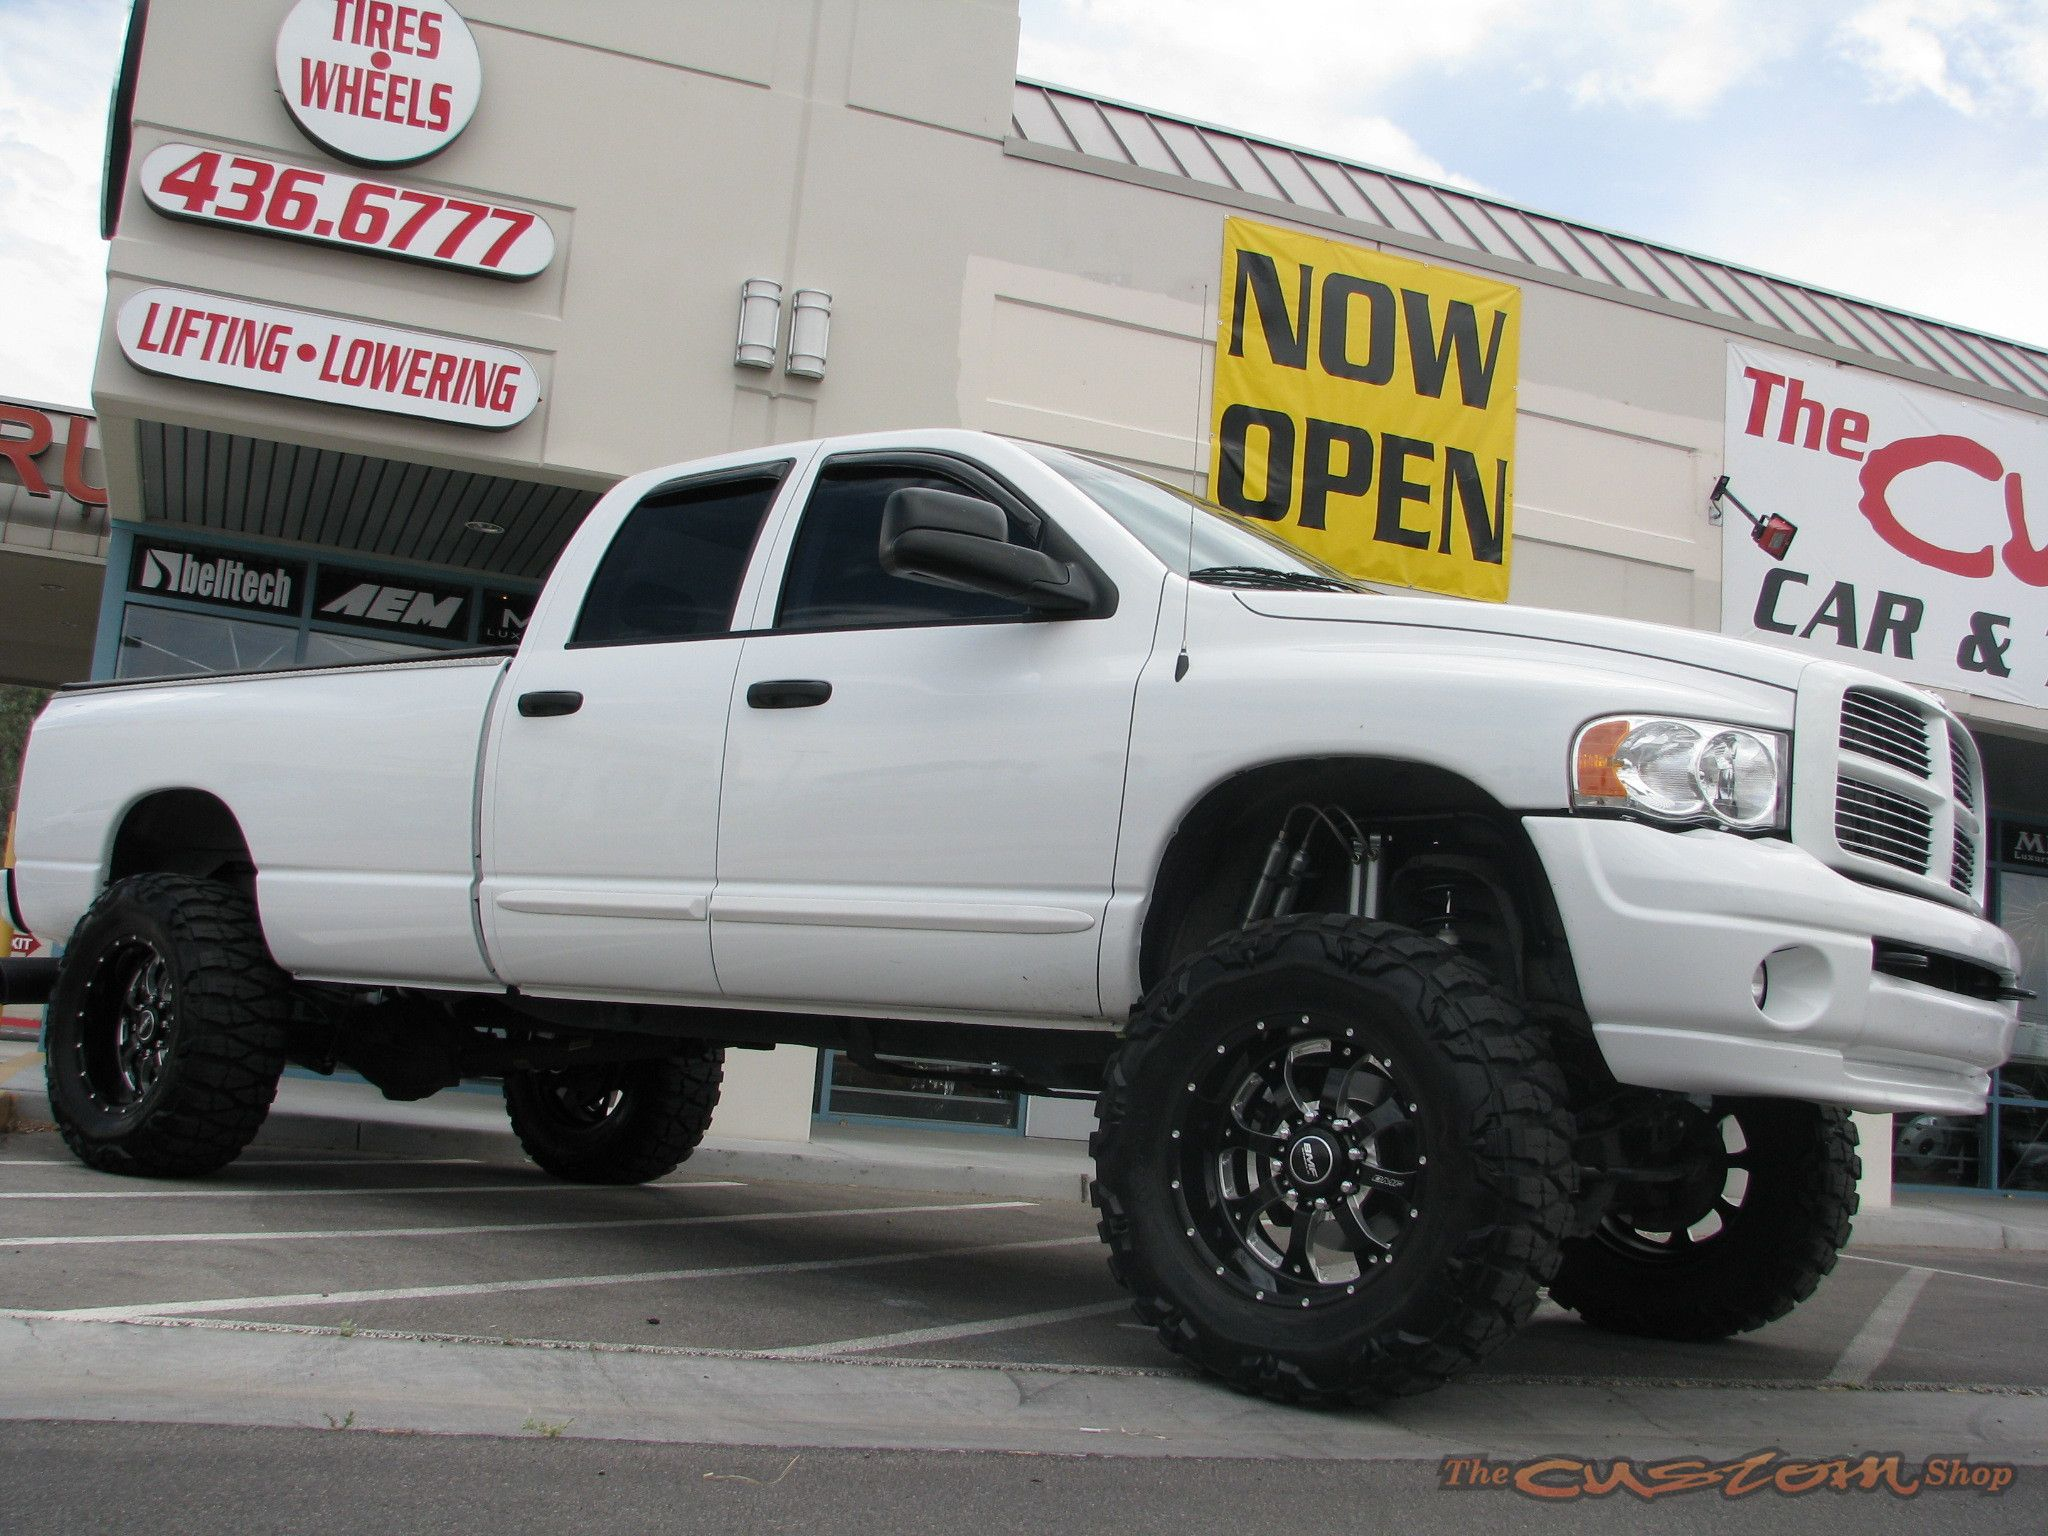 the truck is named for the ram hood ornament that first appeared on dodge vehicles in - White Dodge Ram 2500 Lifted